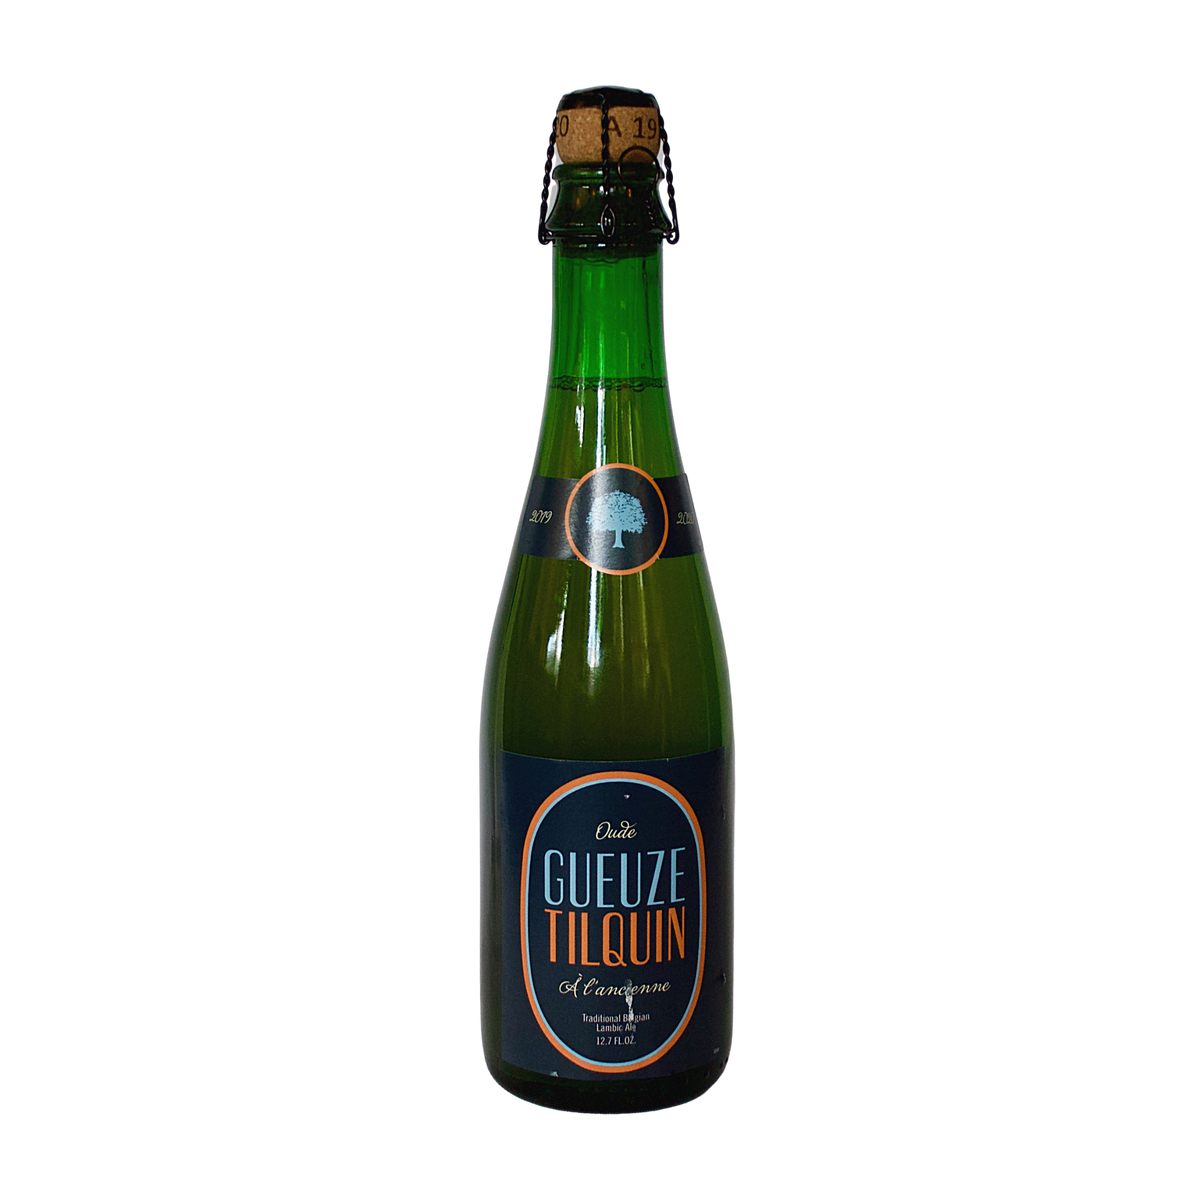 Gueuzerie Tilquin Gueuze L'Ancienne 2020 12.7oz Bottle (Lambic) (Limit 2 Per Order)